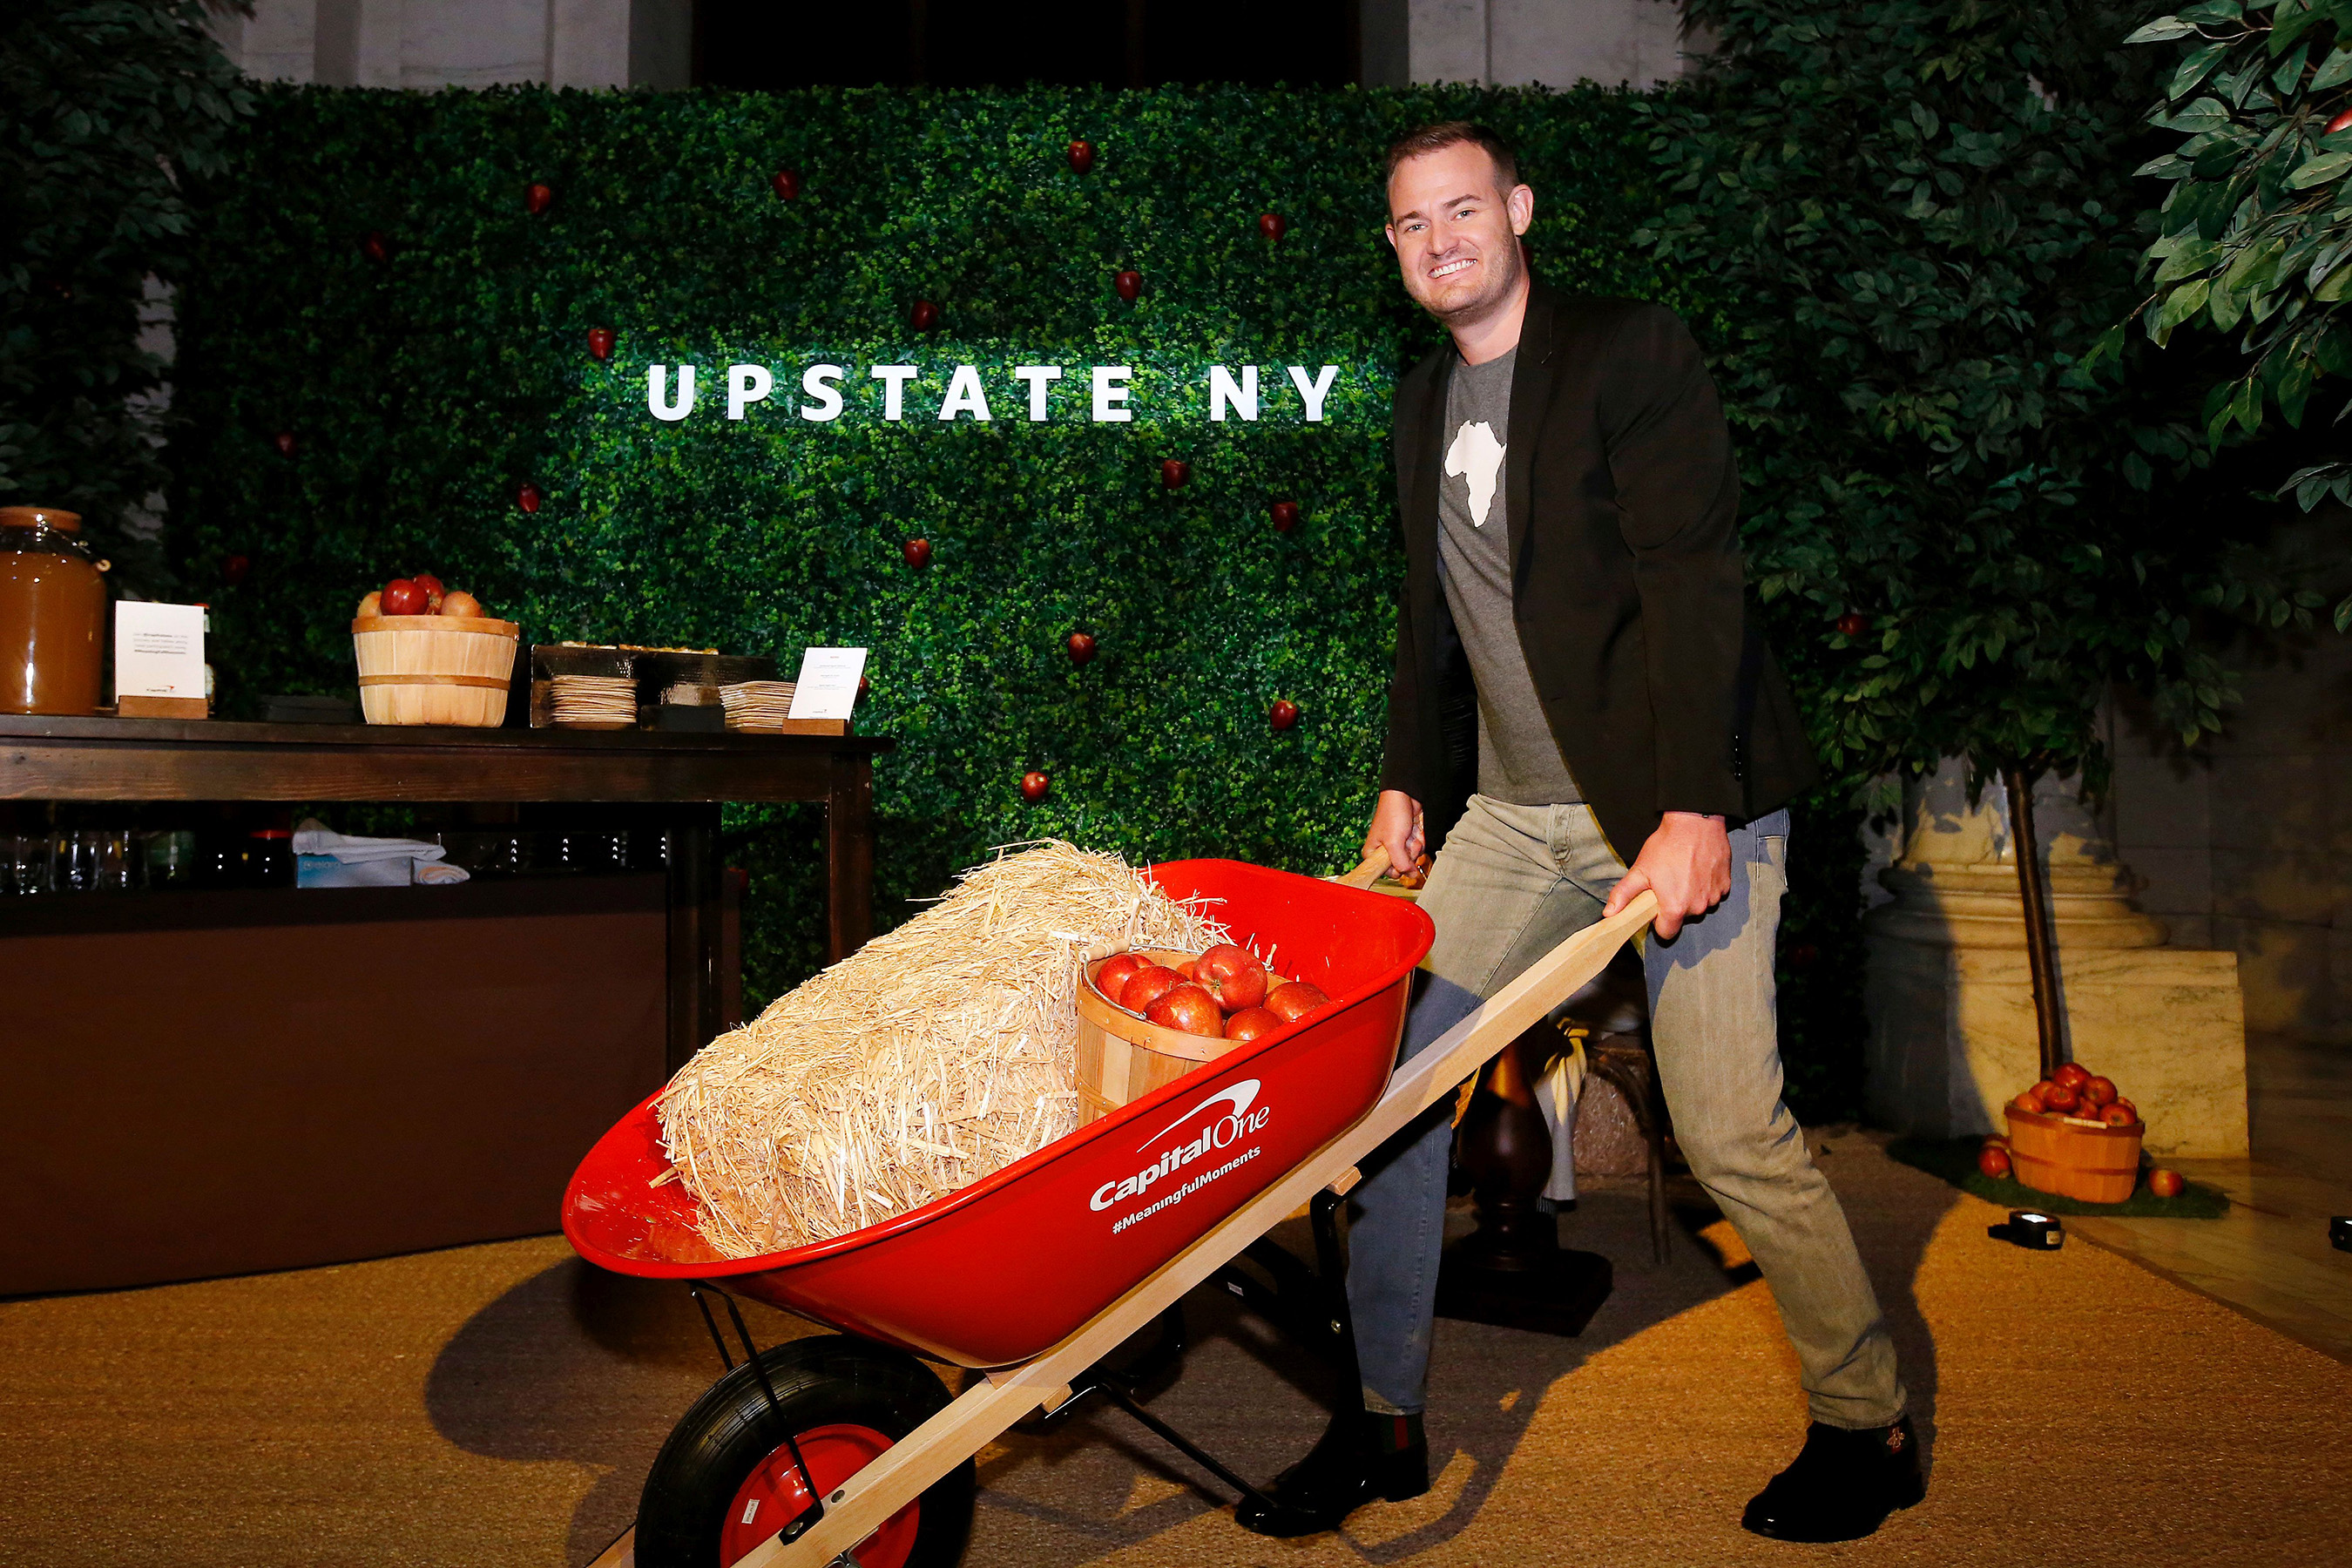 """Brian Kelly (""""The Points Guy"""") wheels his way through the Upstate New York pop-up experience at a launch event for the Purpose Project(SM) by Capital One®, Wednesday, October 24, 2018, in New York. (Jason DeCrow/AP Images for Capital One)"""